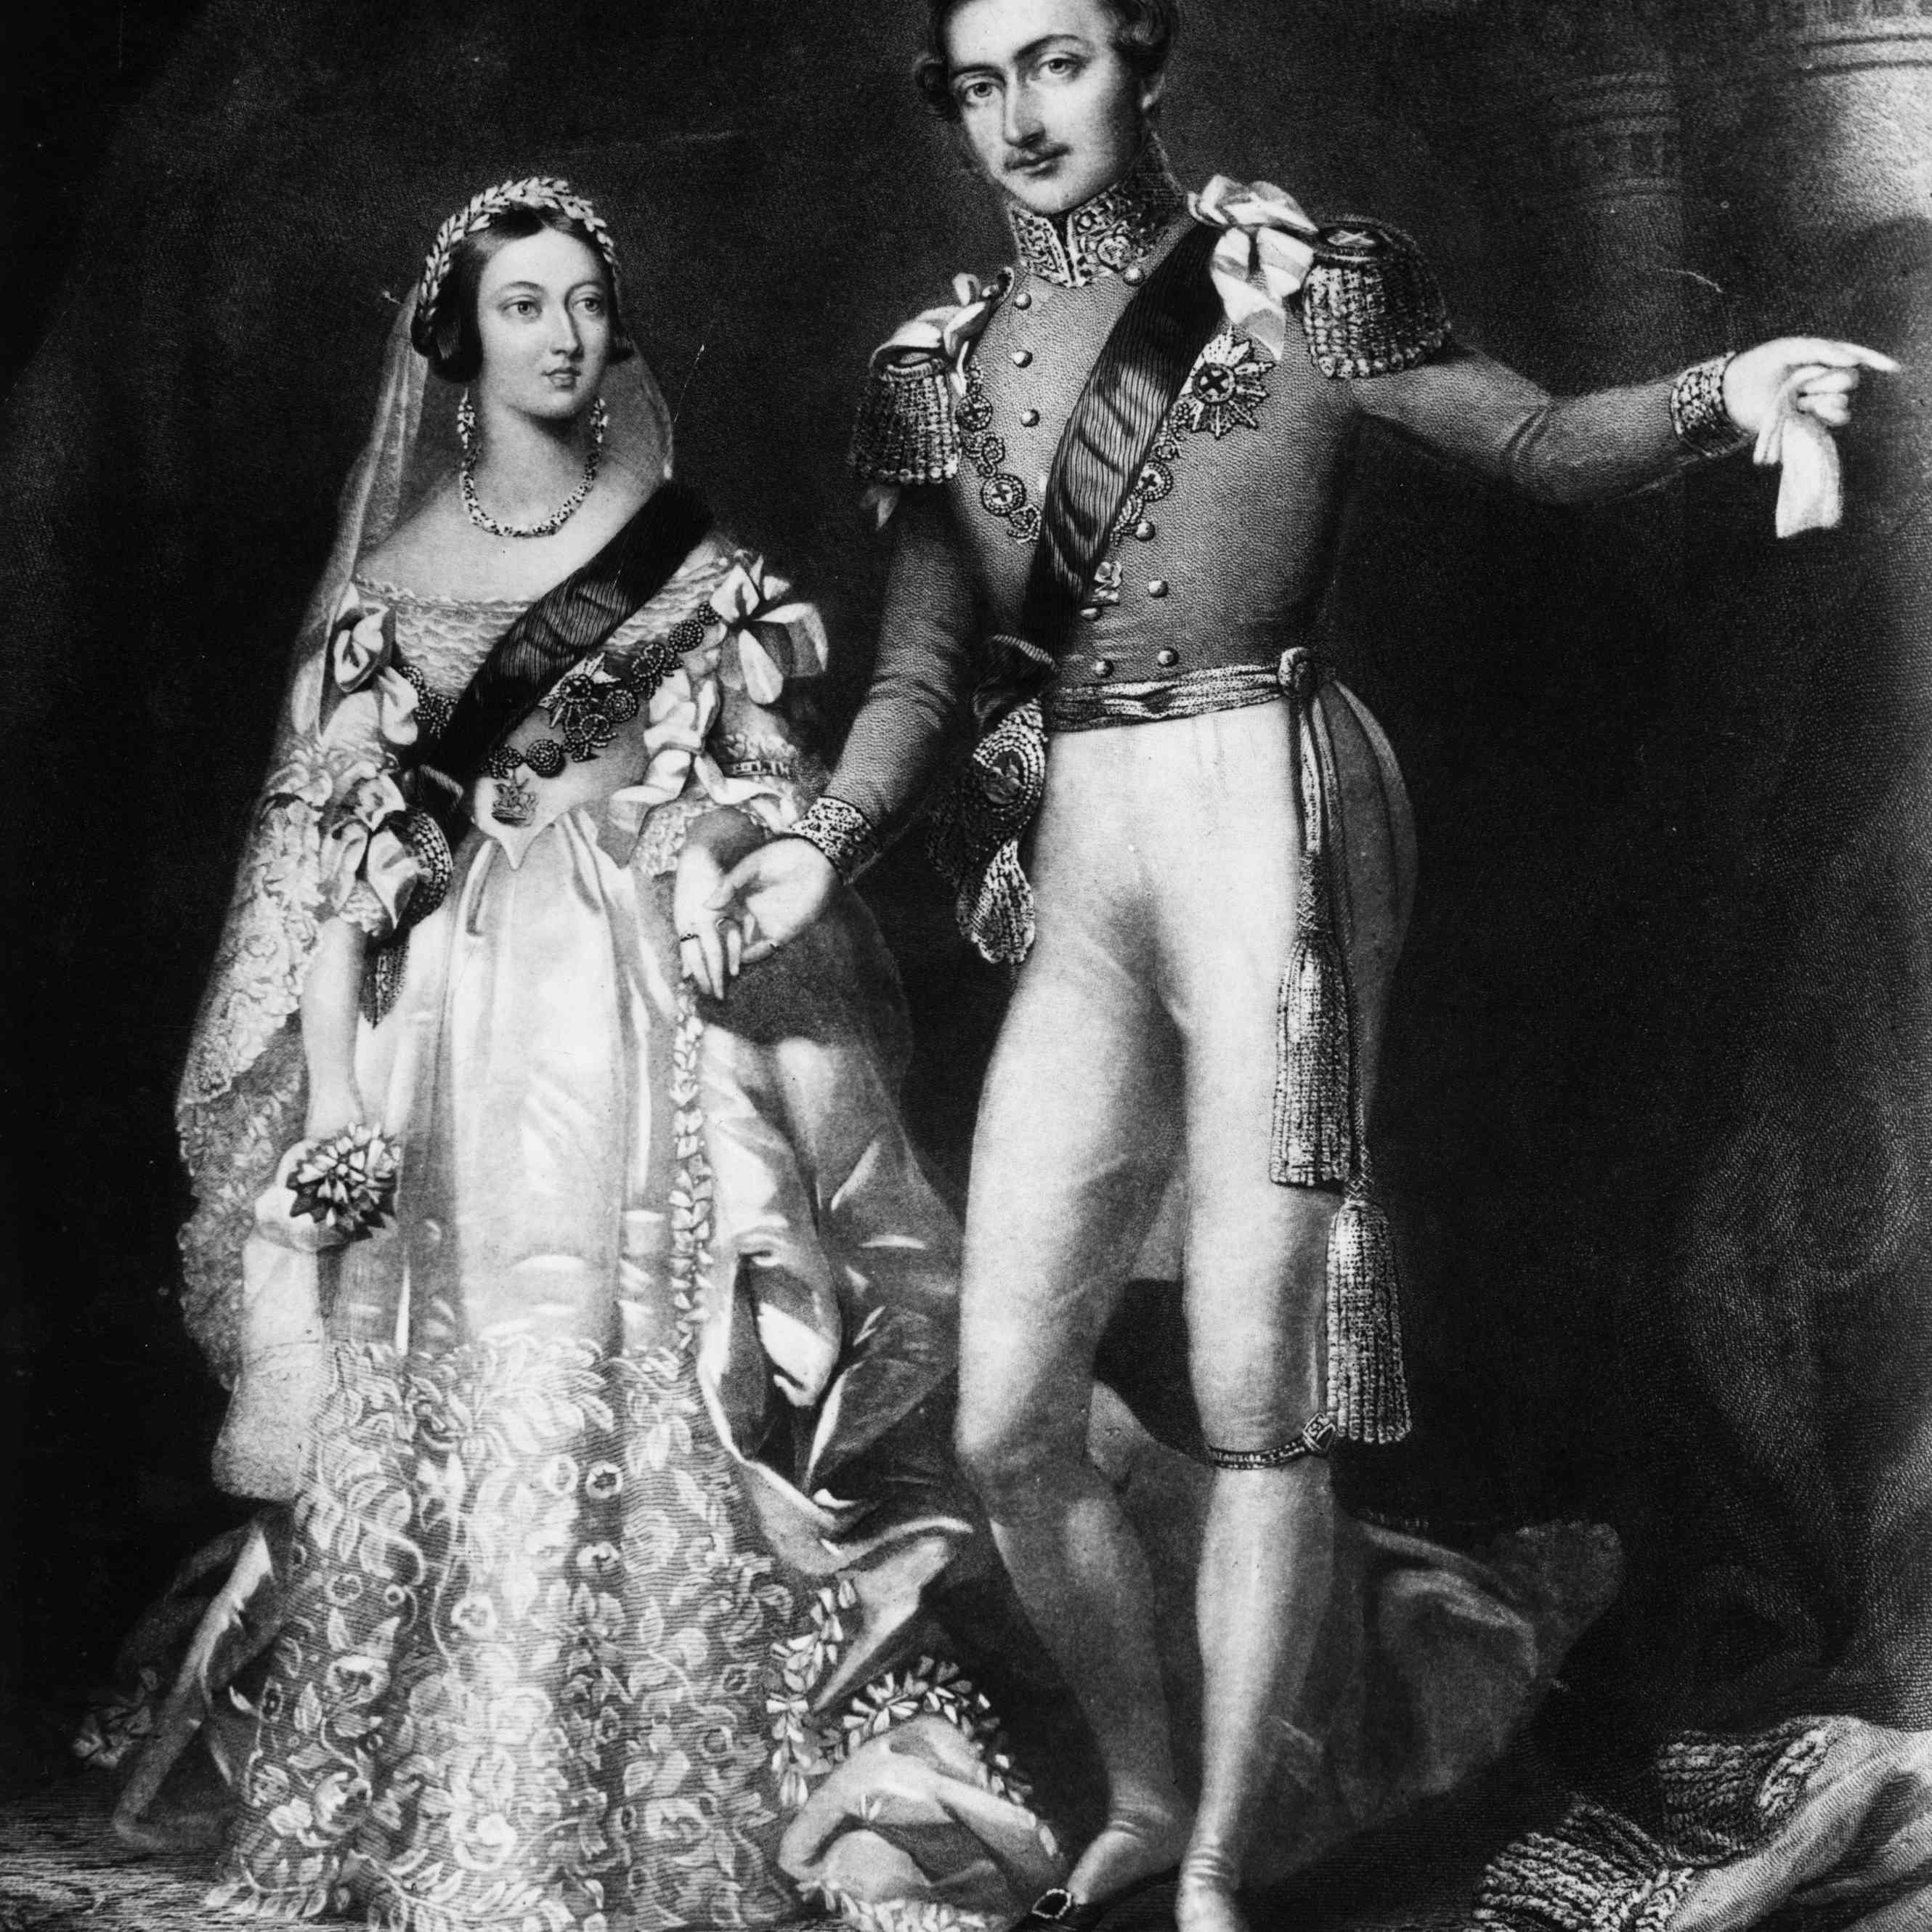 Queen Victoria and Prince Albert on their return from their wedding